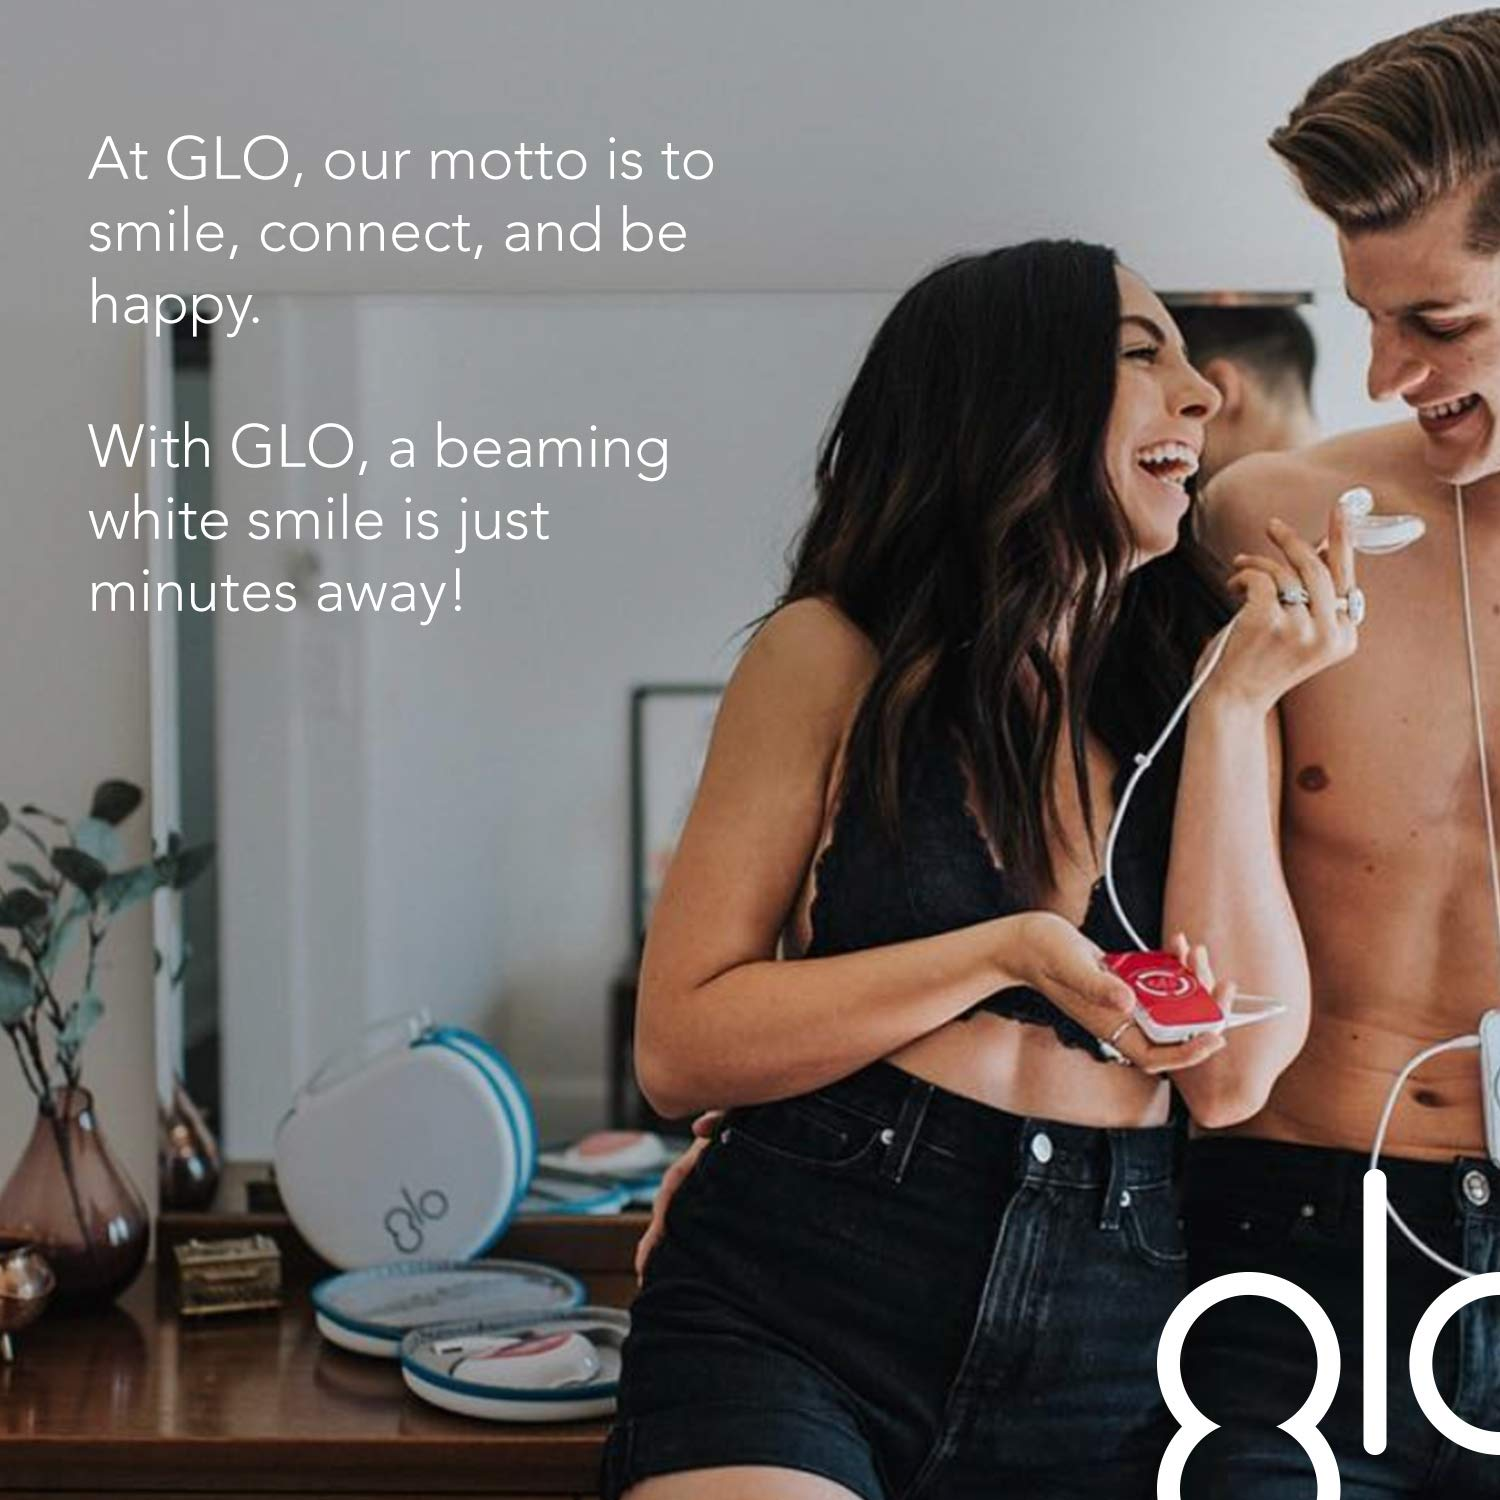 GLO Brilliant Deluxe Teeth Whitening Device Kit with Patented Blue LED Light & Heat Accelerator for Fast, Pain-Free, Long Lasting Results. Clinically Proven. Includes 10 GLO Gel Vials+ Lip Care, WHITE by GLO Science (Image #7)